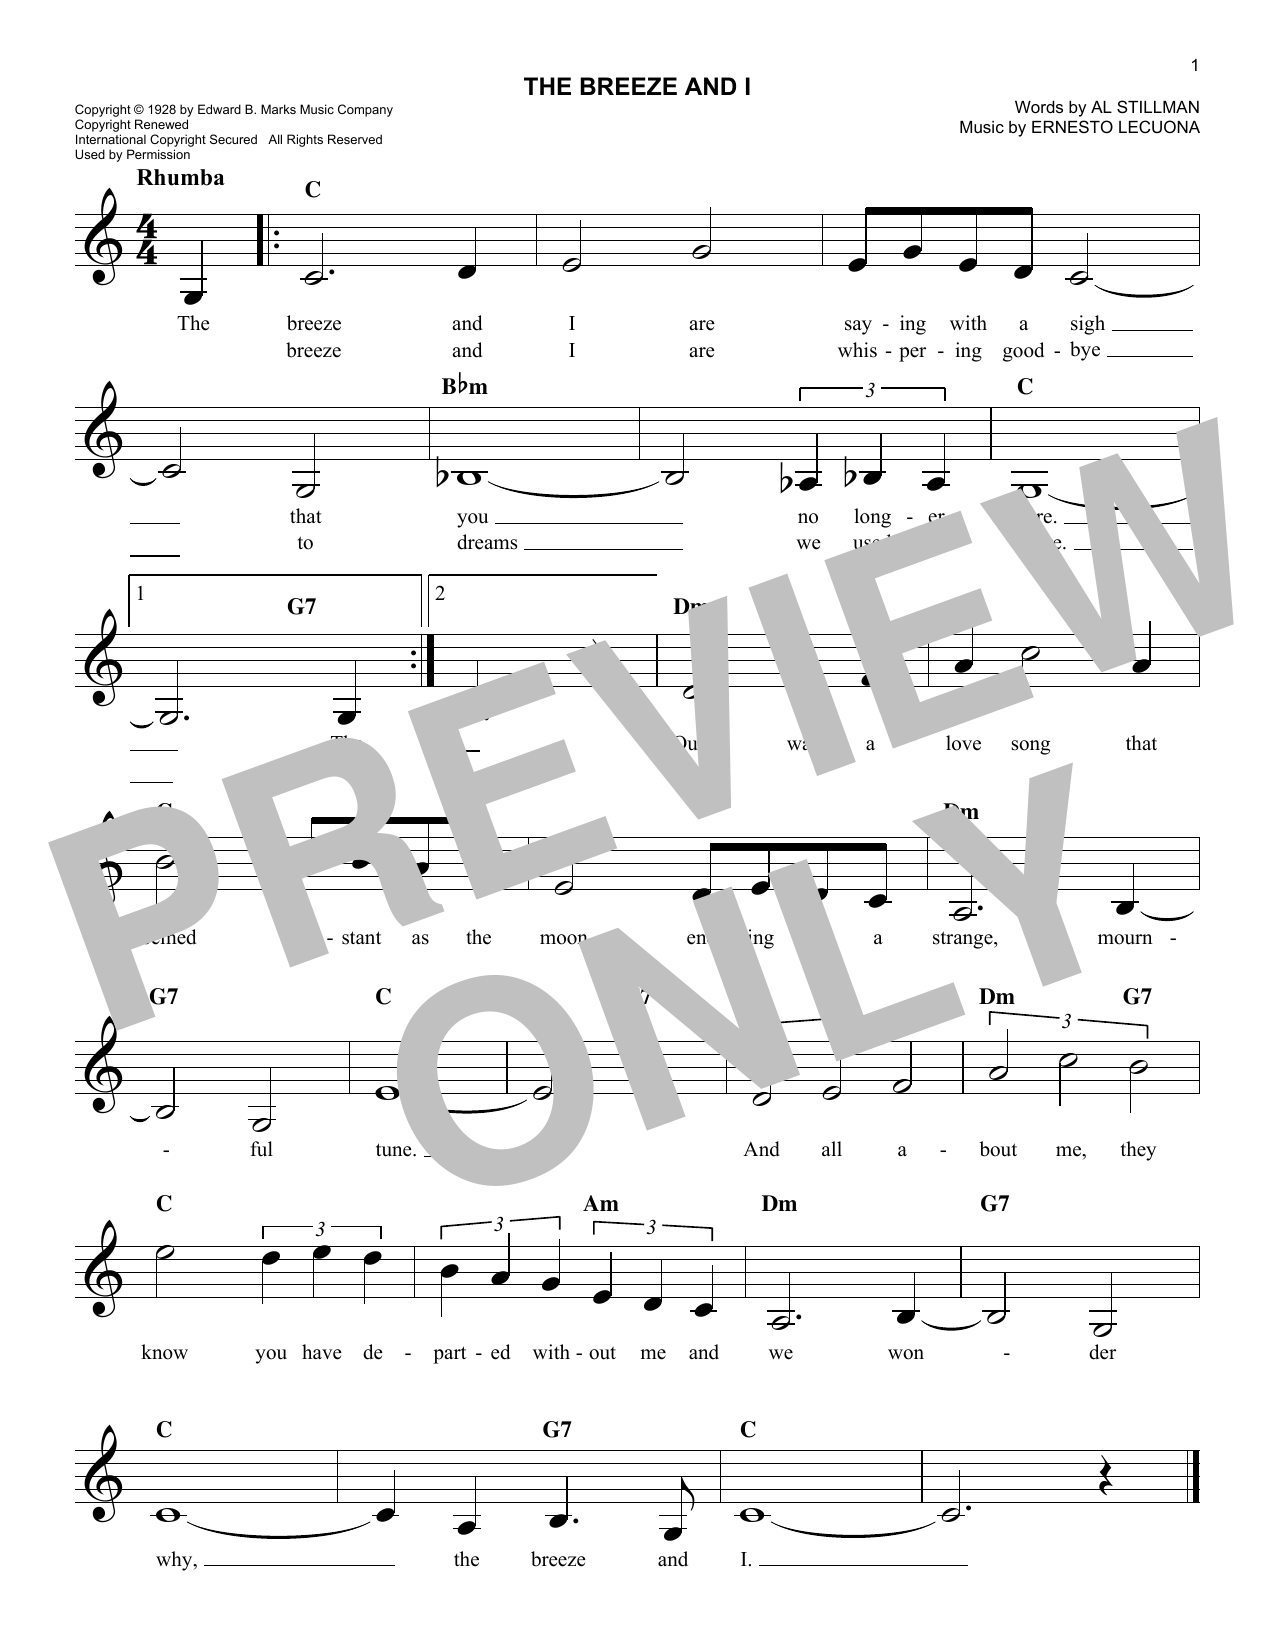 The Breeze And I Sheet Music